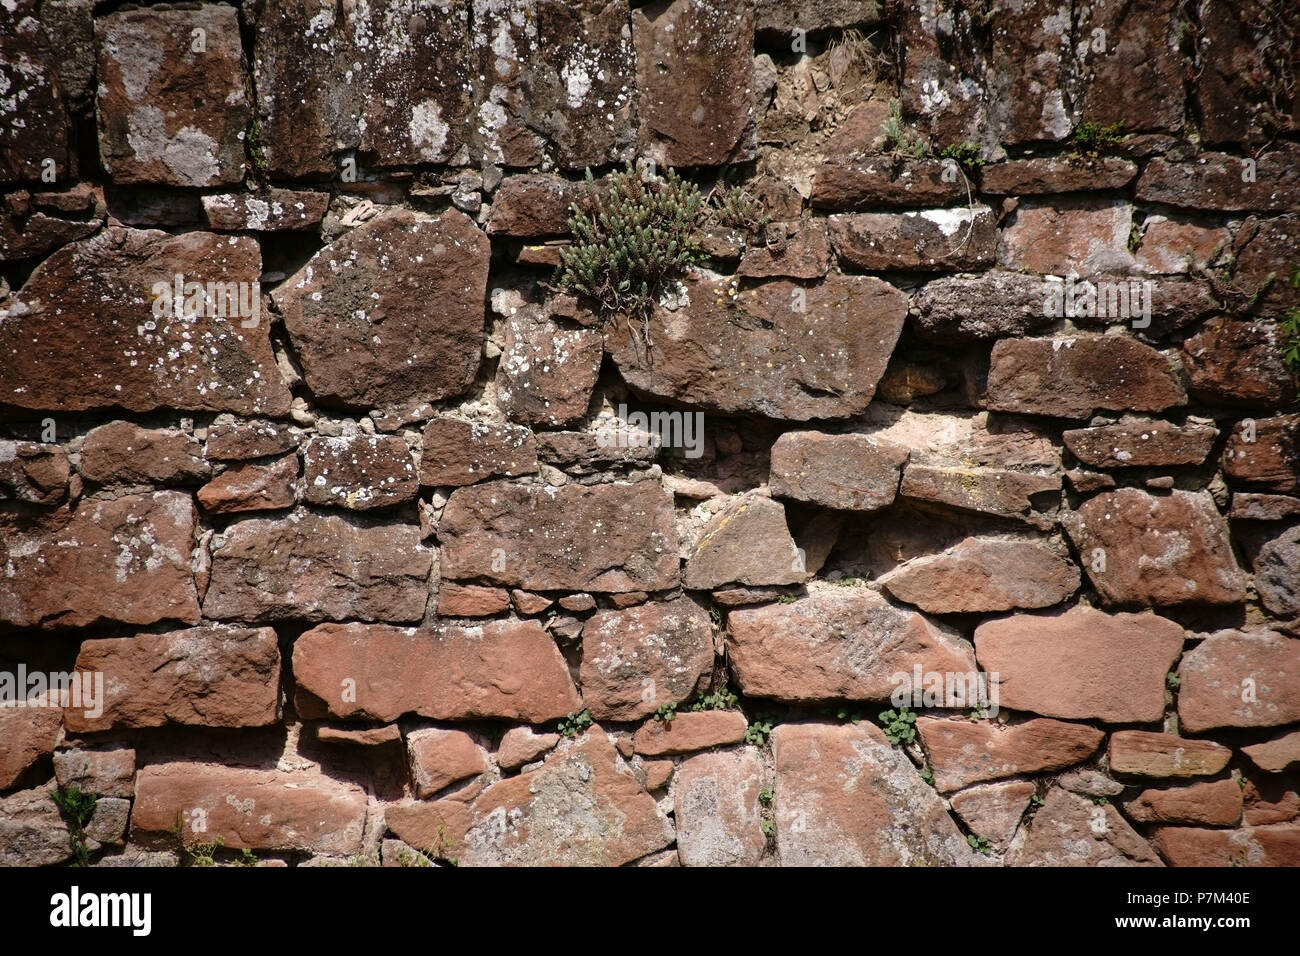 A rustic wall of staggered and broken stones with scattered succulent plants in the cracks. - Stock Image